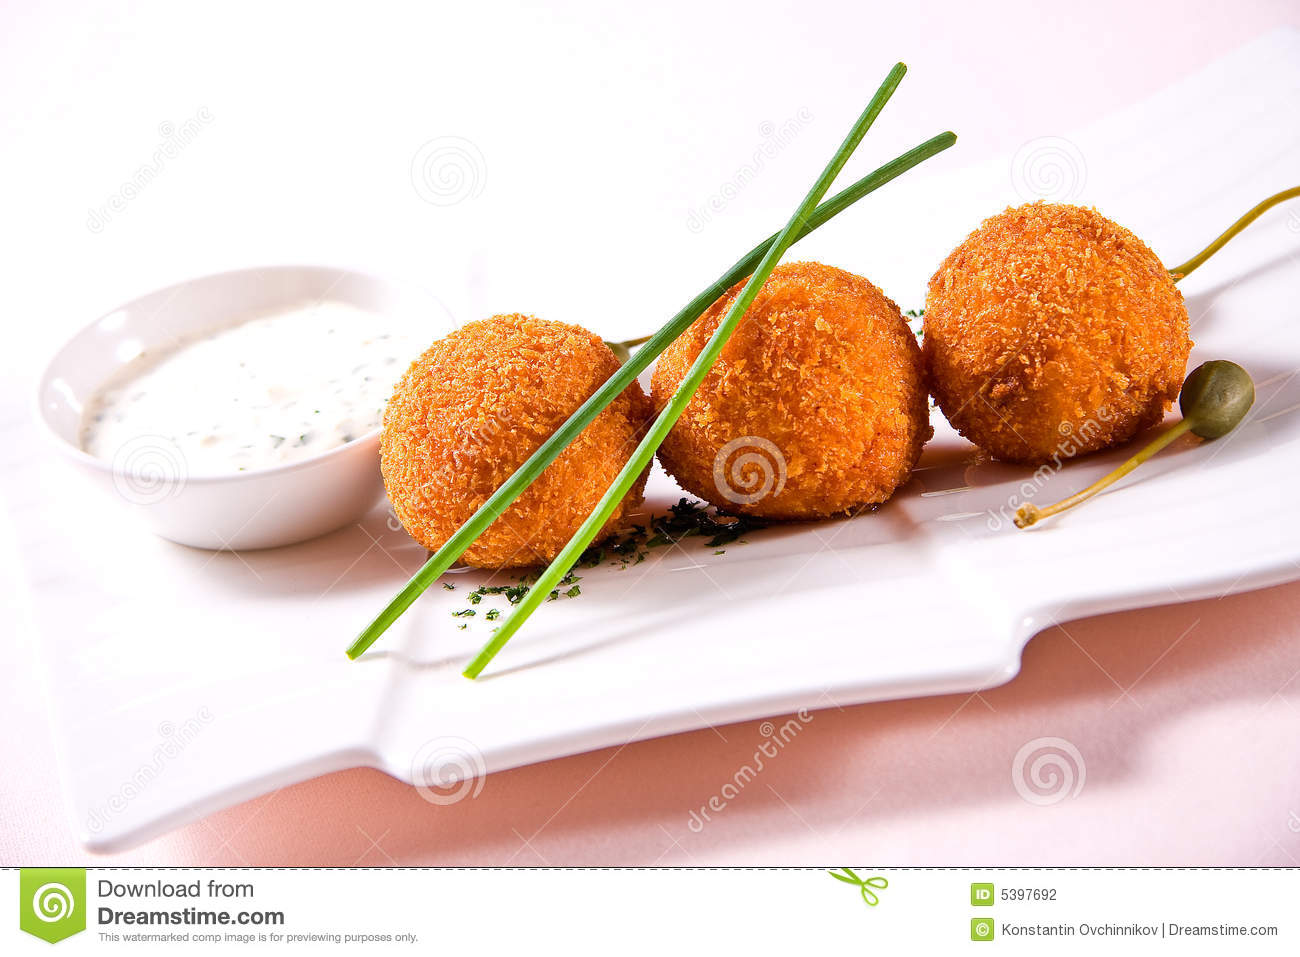 Fried crumbed scallops